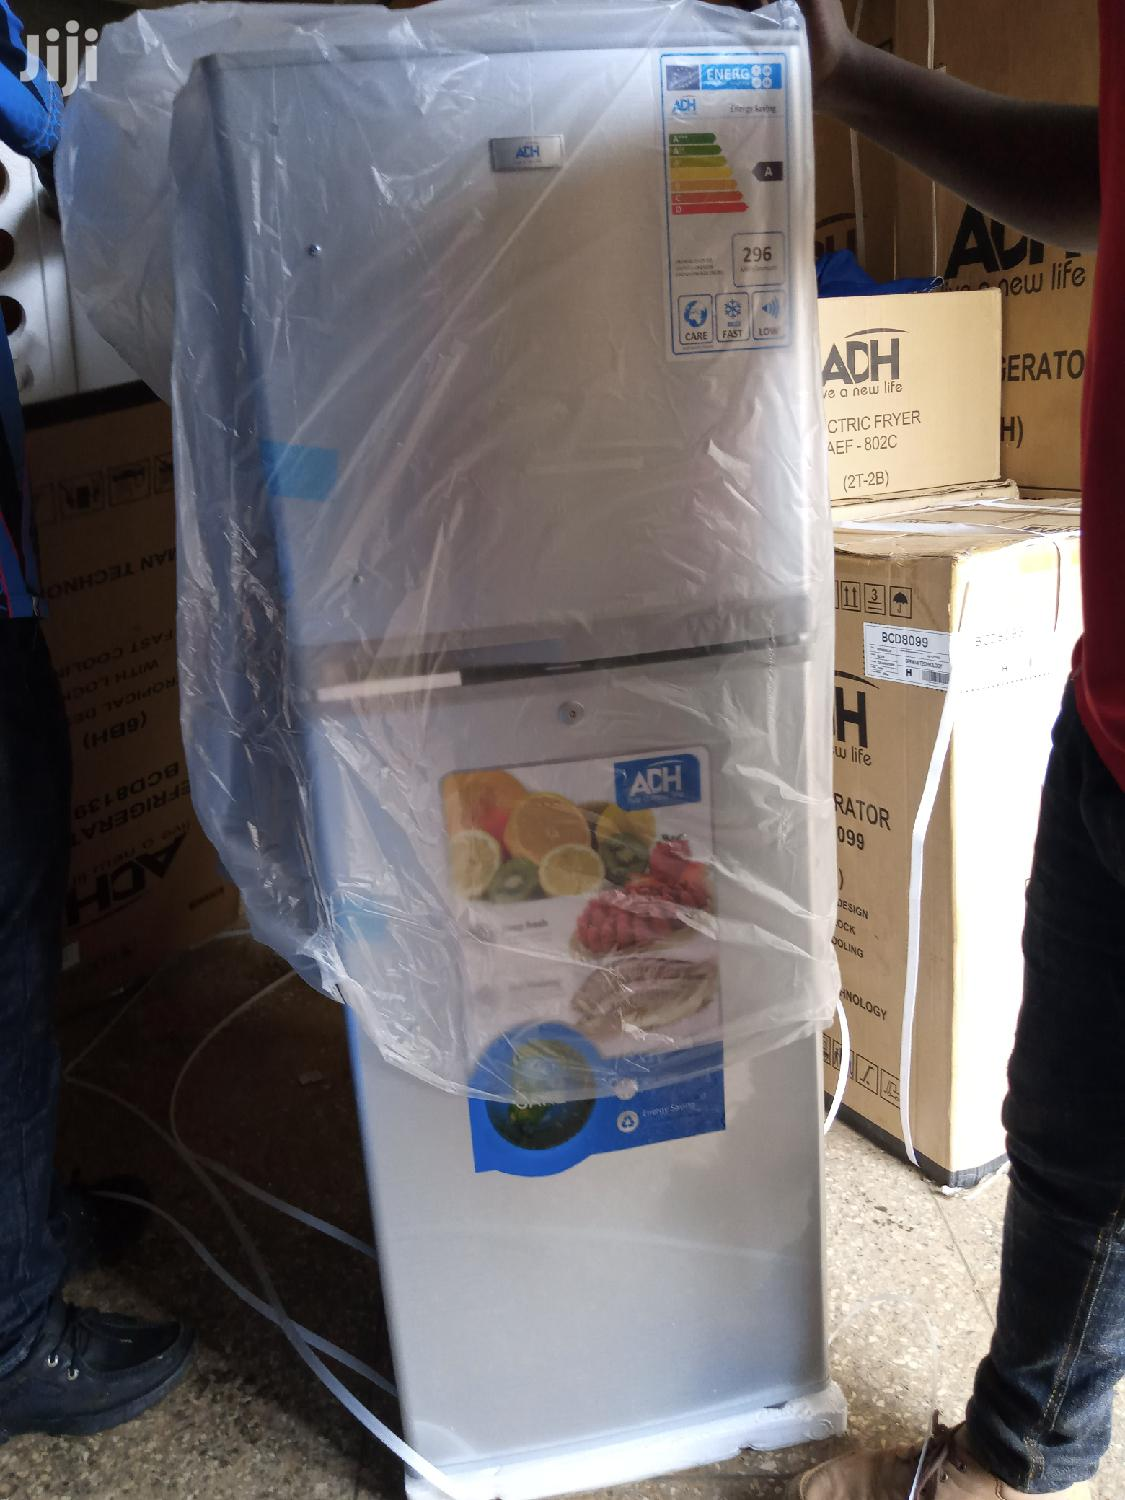 ADH Double Door Fridge 168L